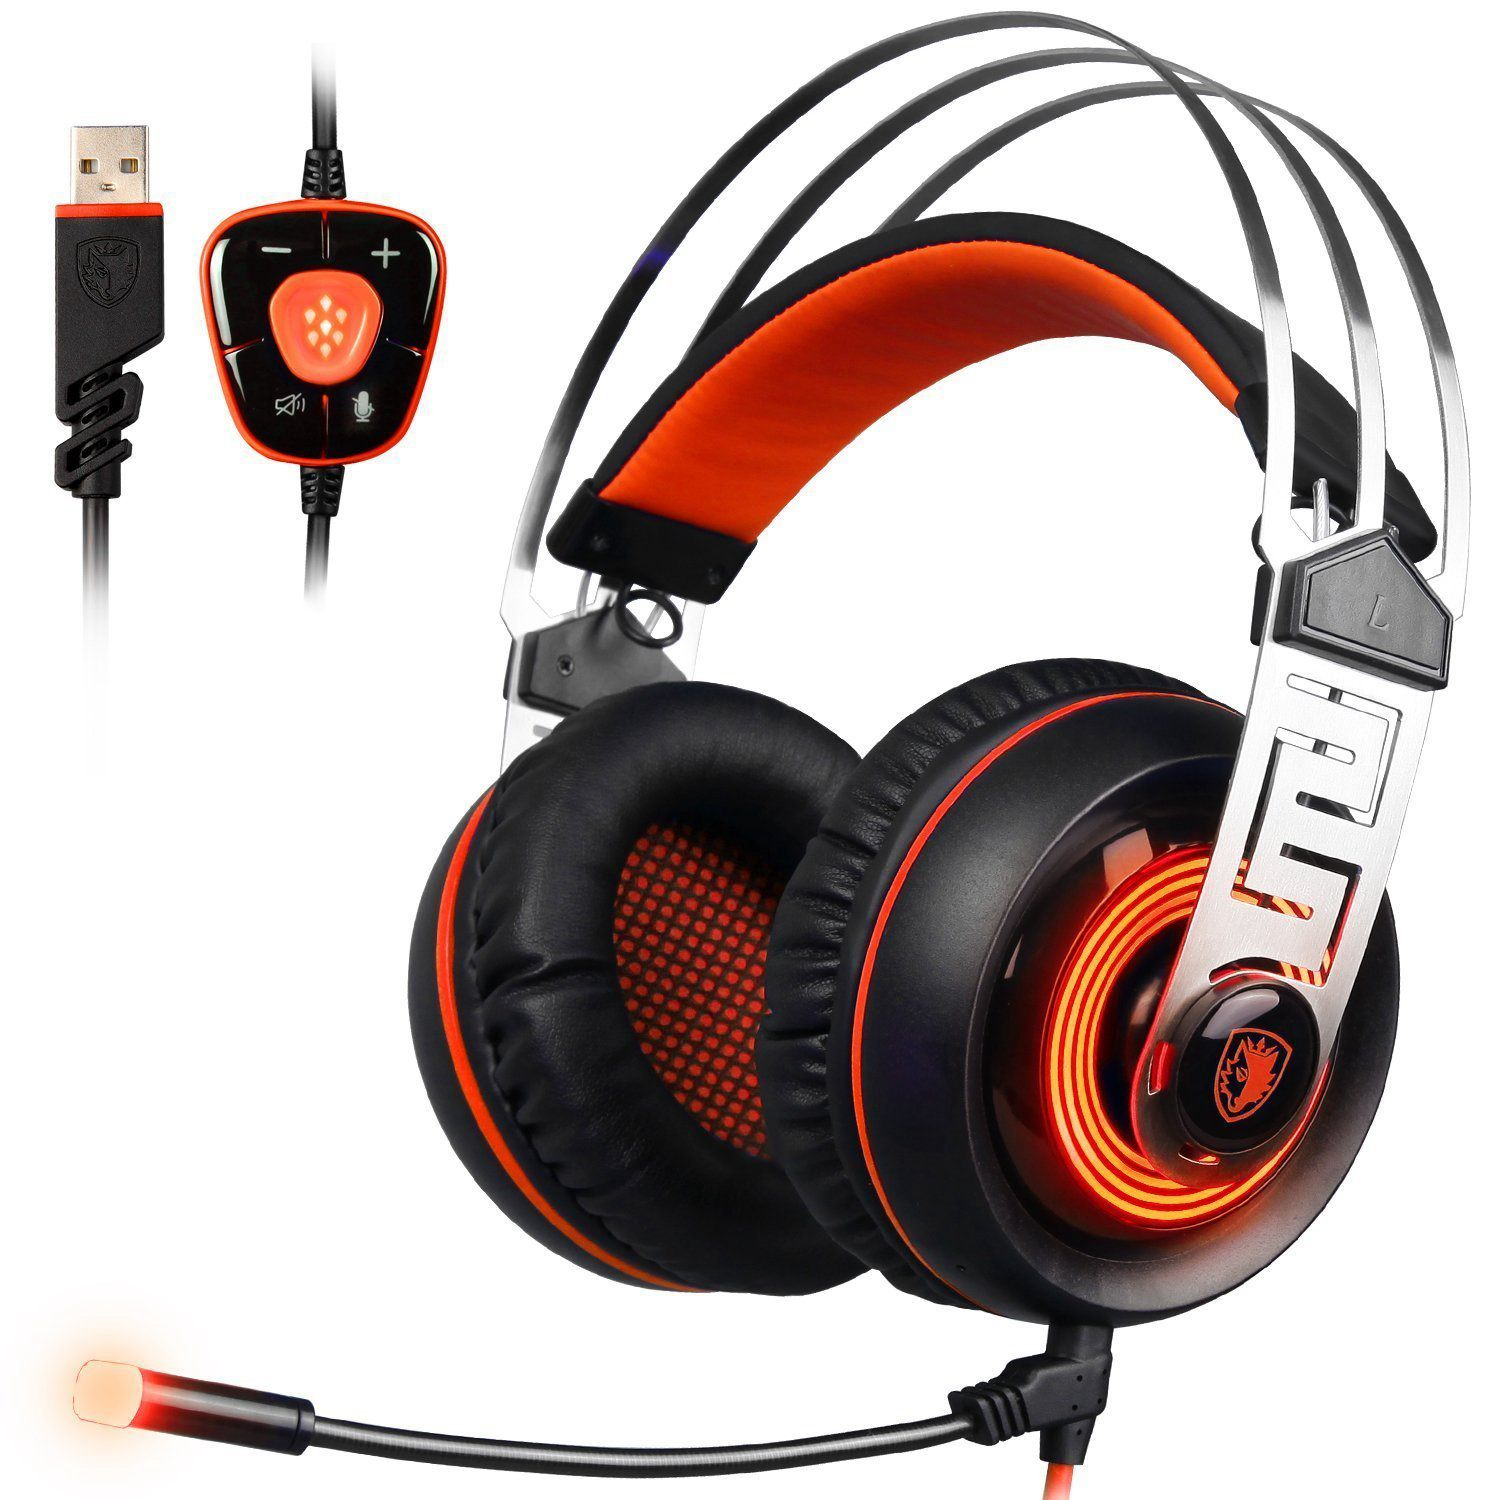 Top Deals SADES A7 USB 7.1 Gaming Headphones Game Earphone With Mic LED for Computer Laptop PC Gamer Stereo Headset 2016 pro skype gaming stereo headphones headset earphone mic pc computer laptop sa 708 gaming headphones